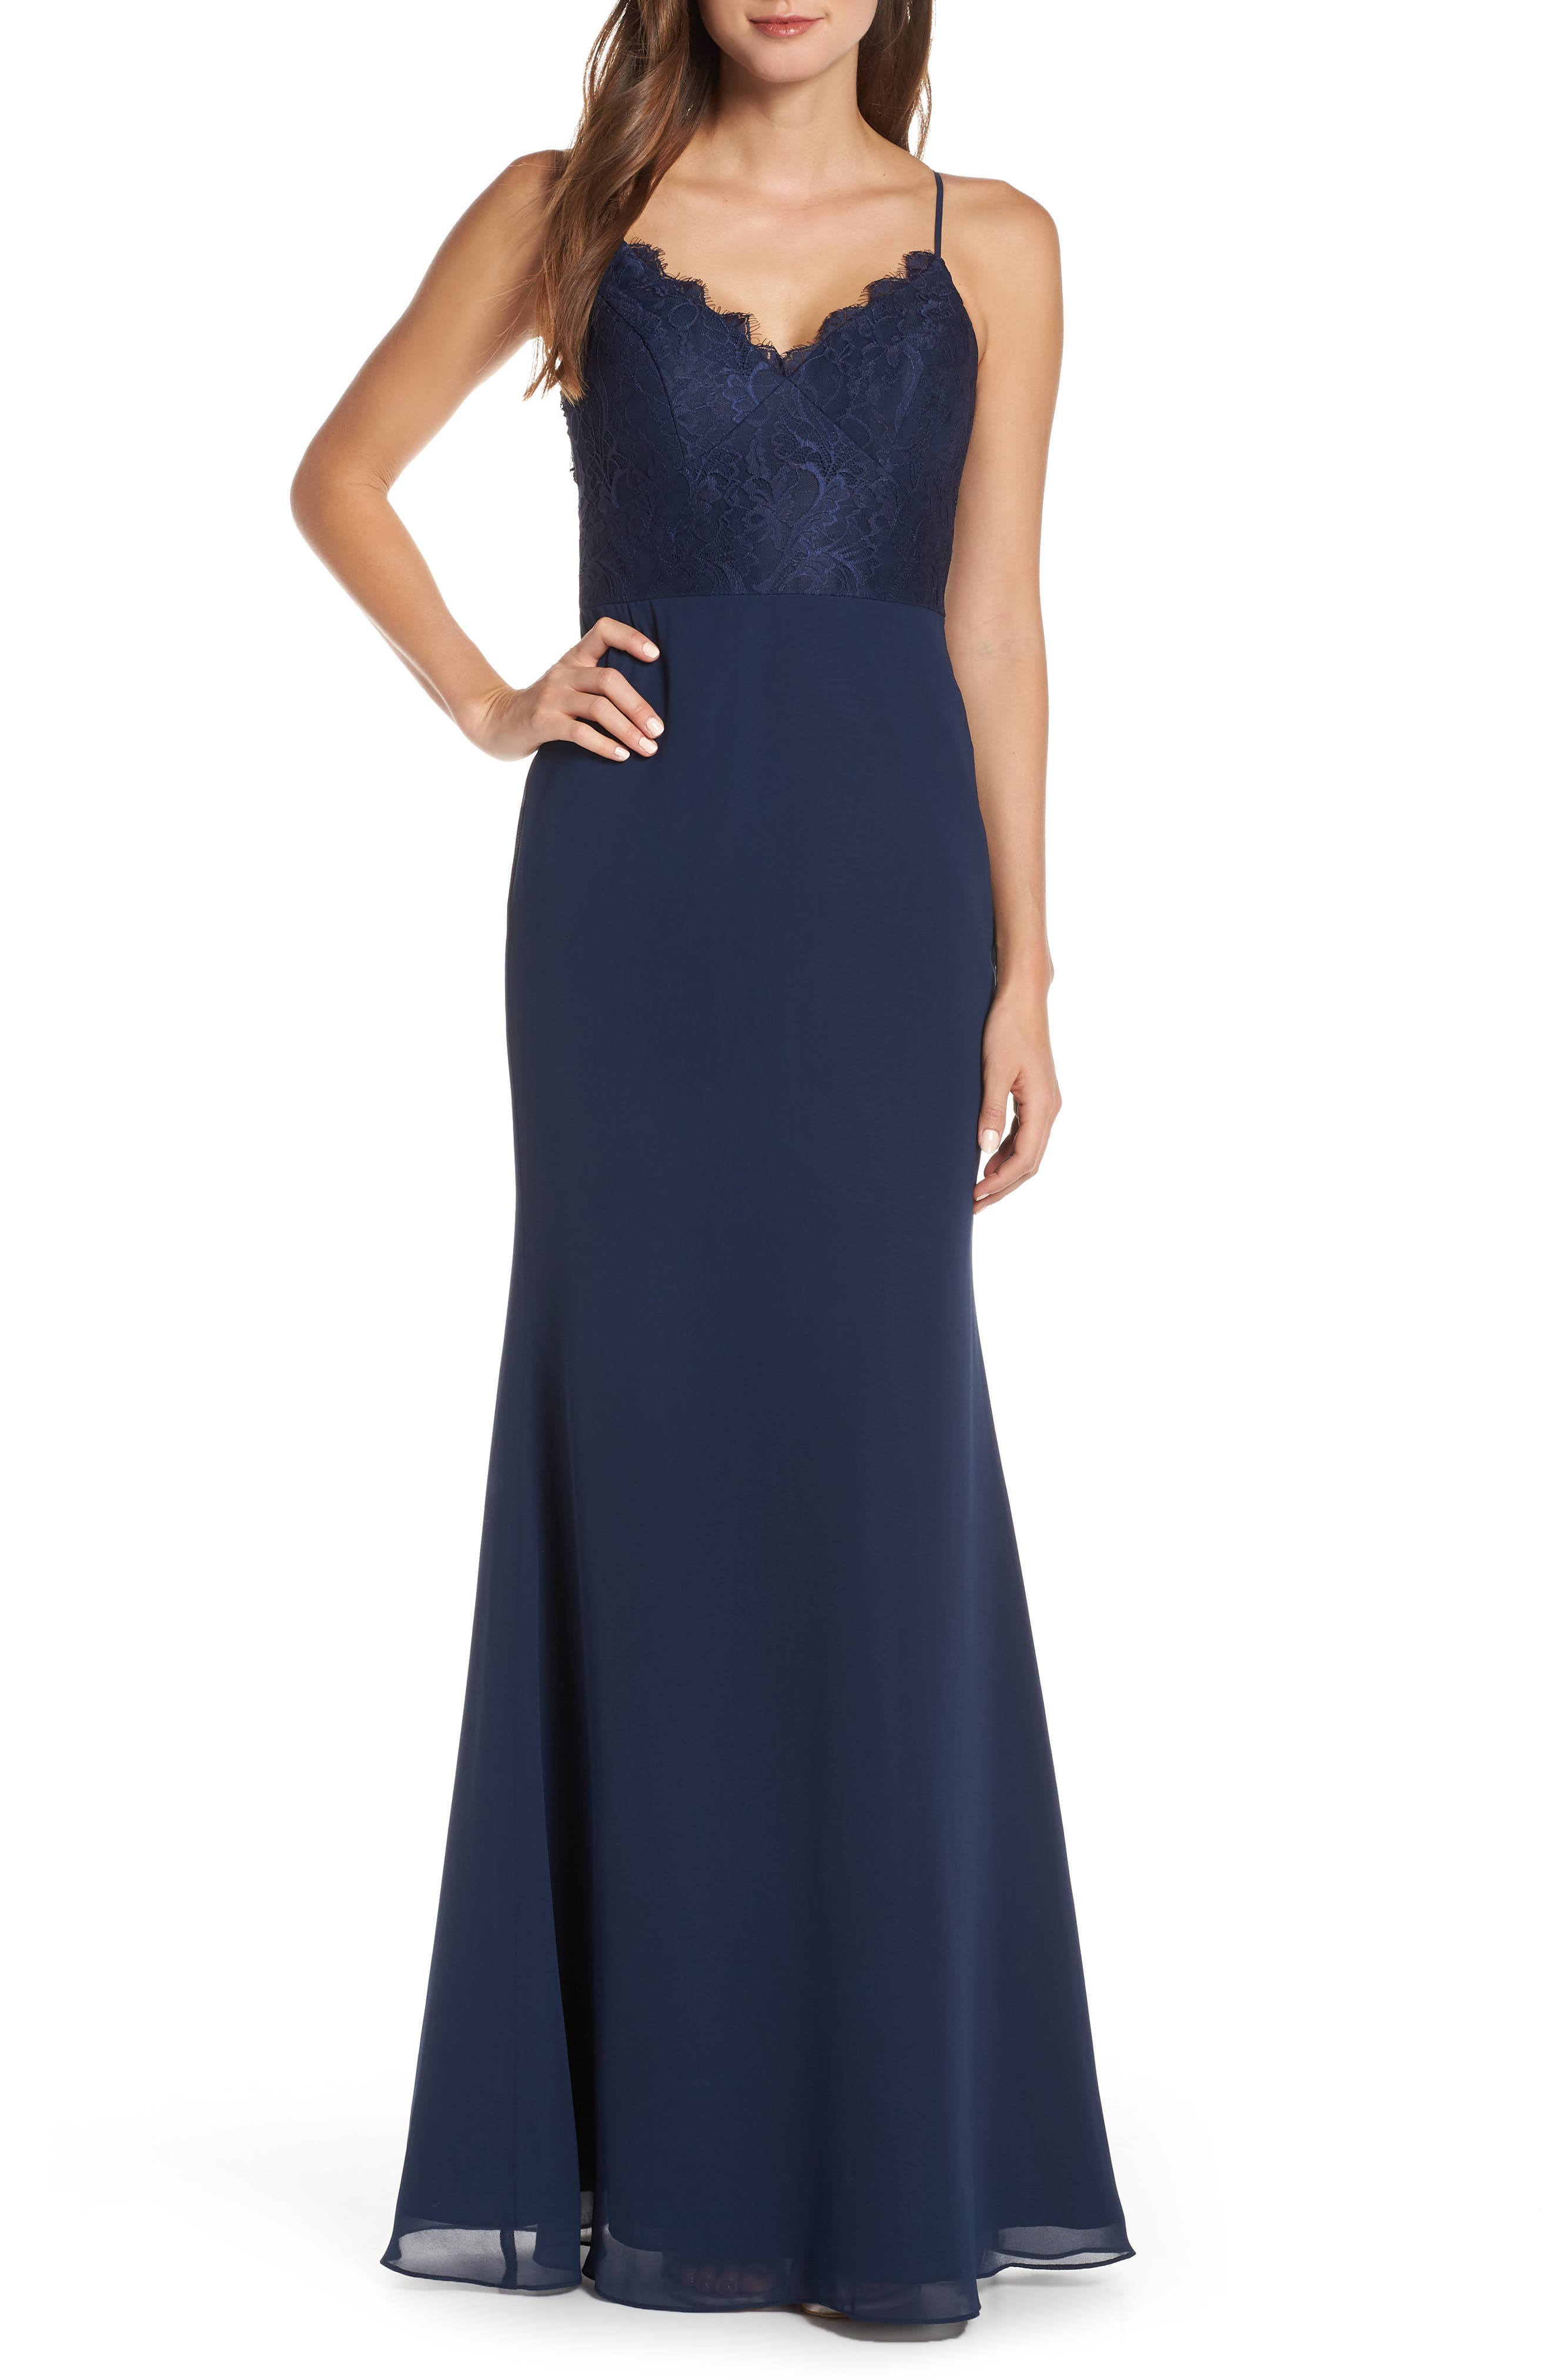 Hayley Paige Occasions Sleeveless Rose Lace & Chiffon Evening Dress, Blue